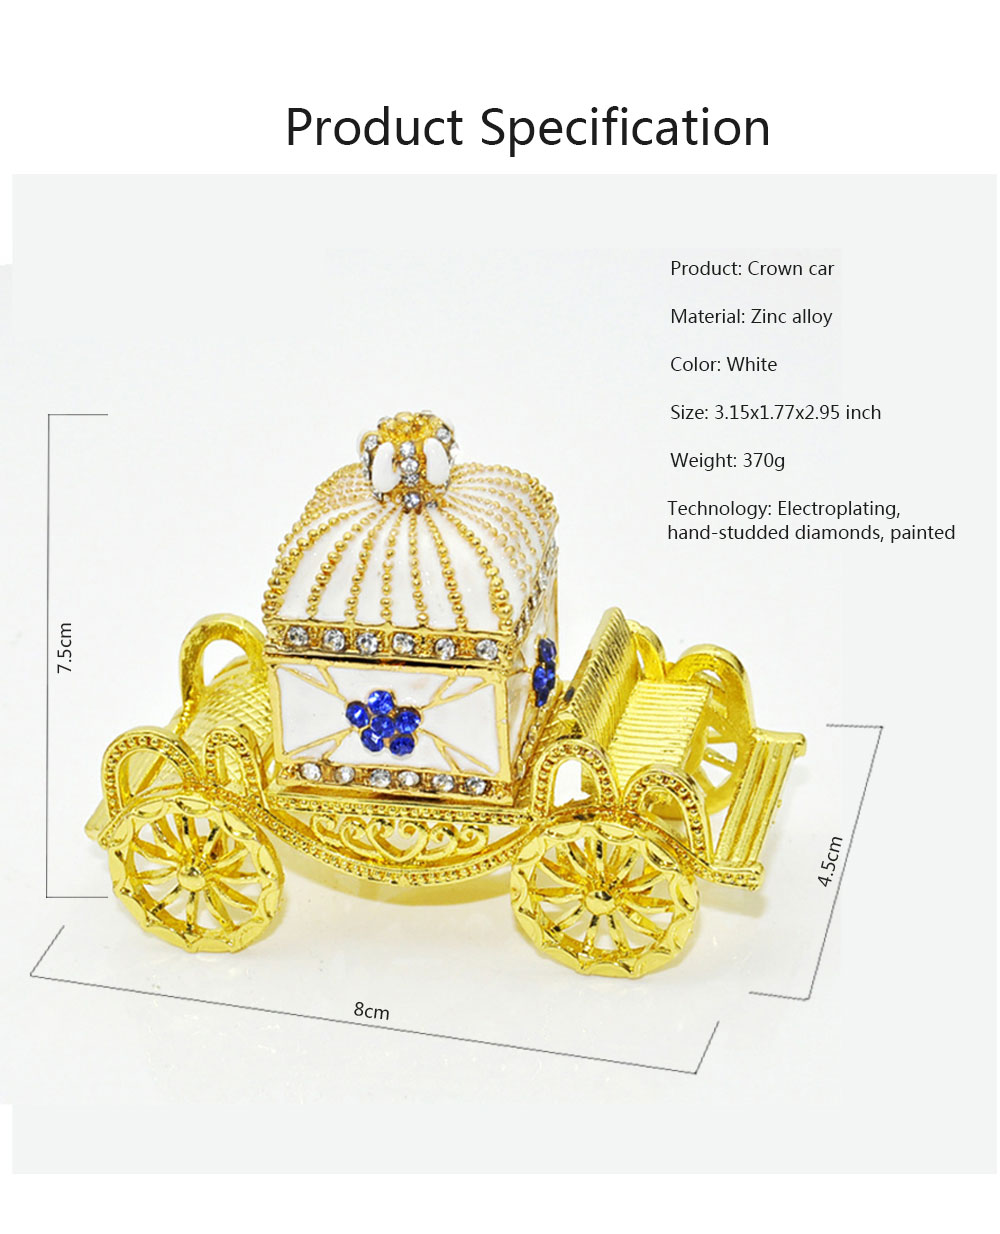 Diamond Crown Car European Enamel Painting Technology Creativity Metal Decoration for Home Valentine's Day Gift 6